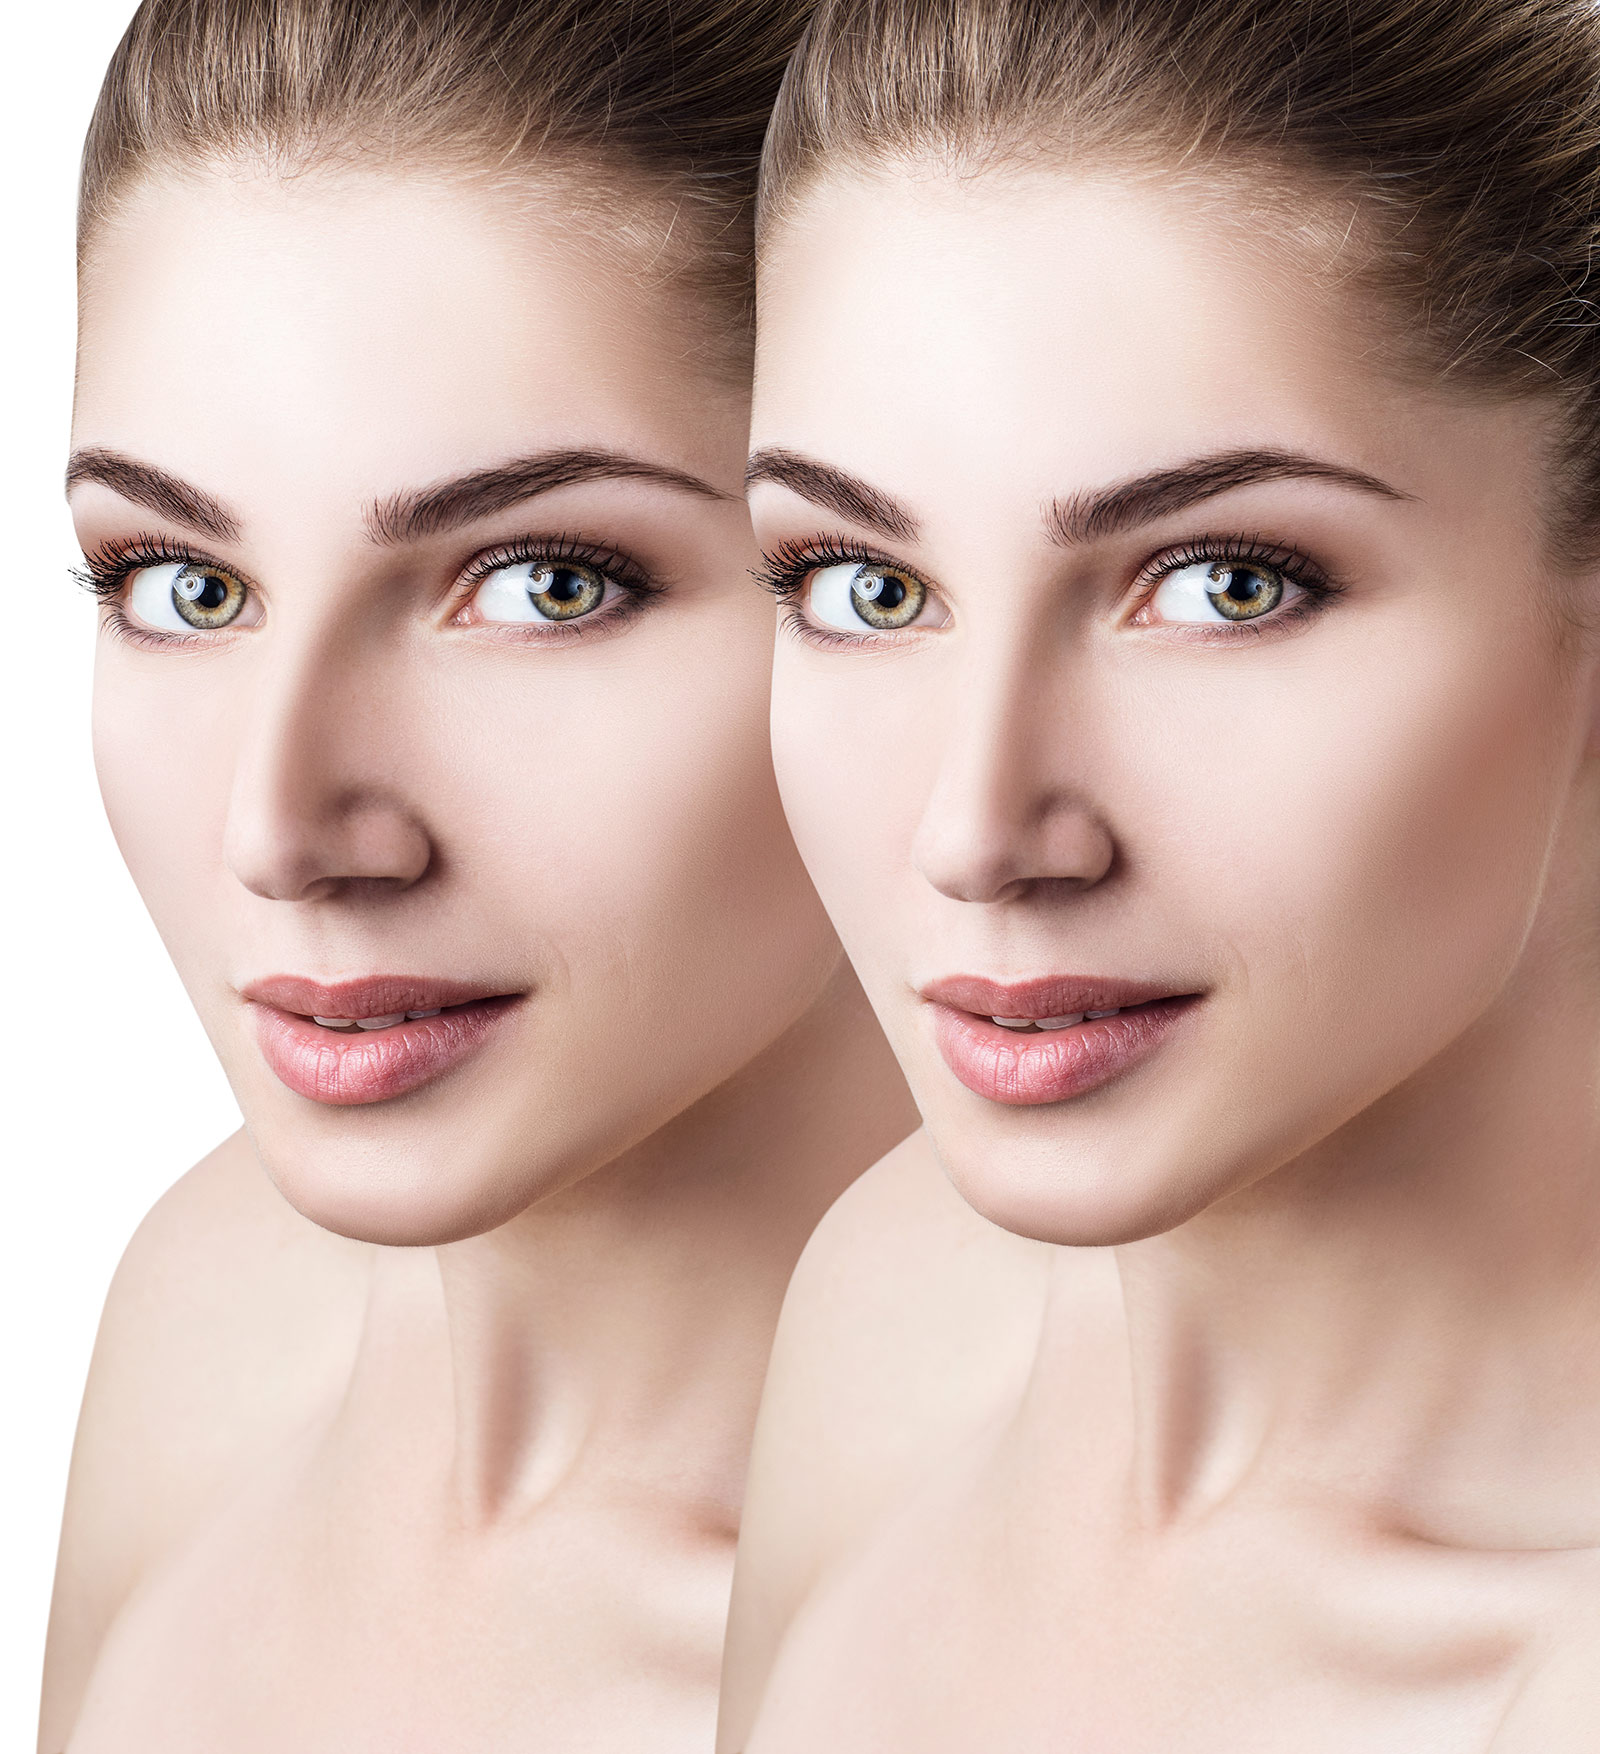 Woman's face, Before and After Rhinoplasty Treatment, face oblique view